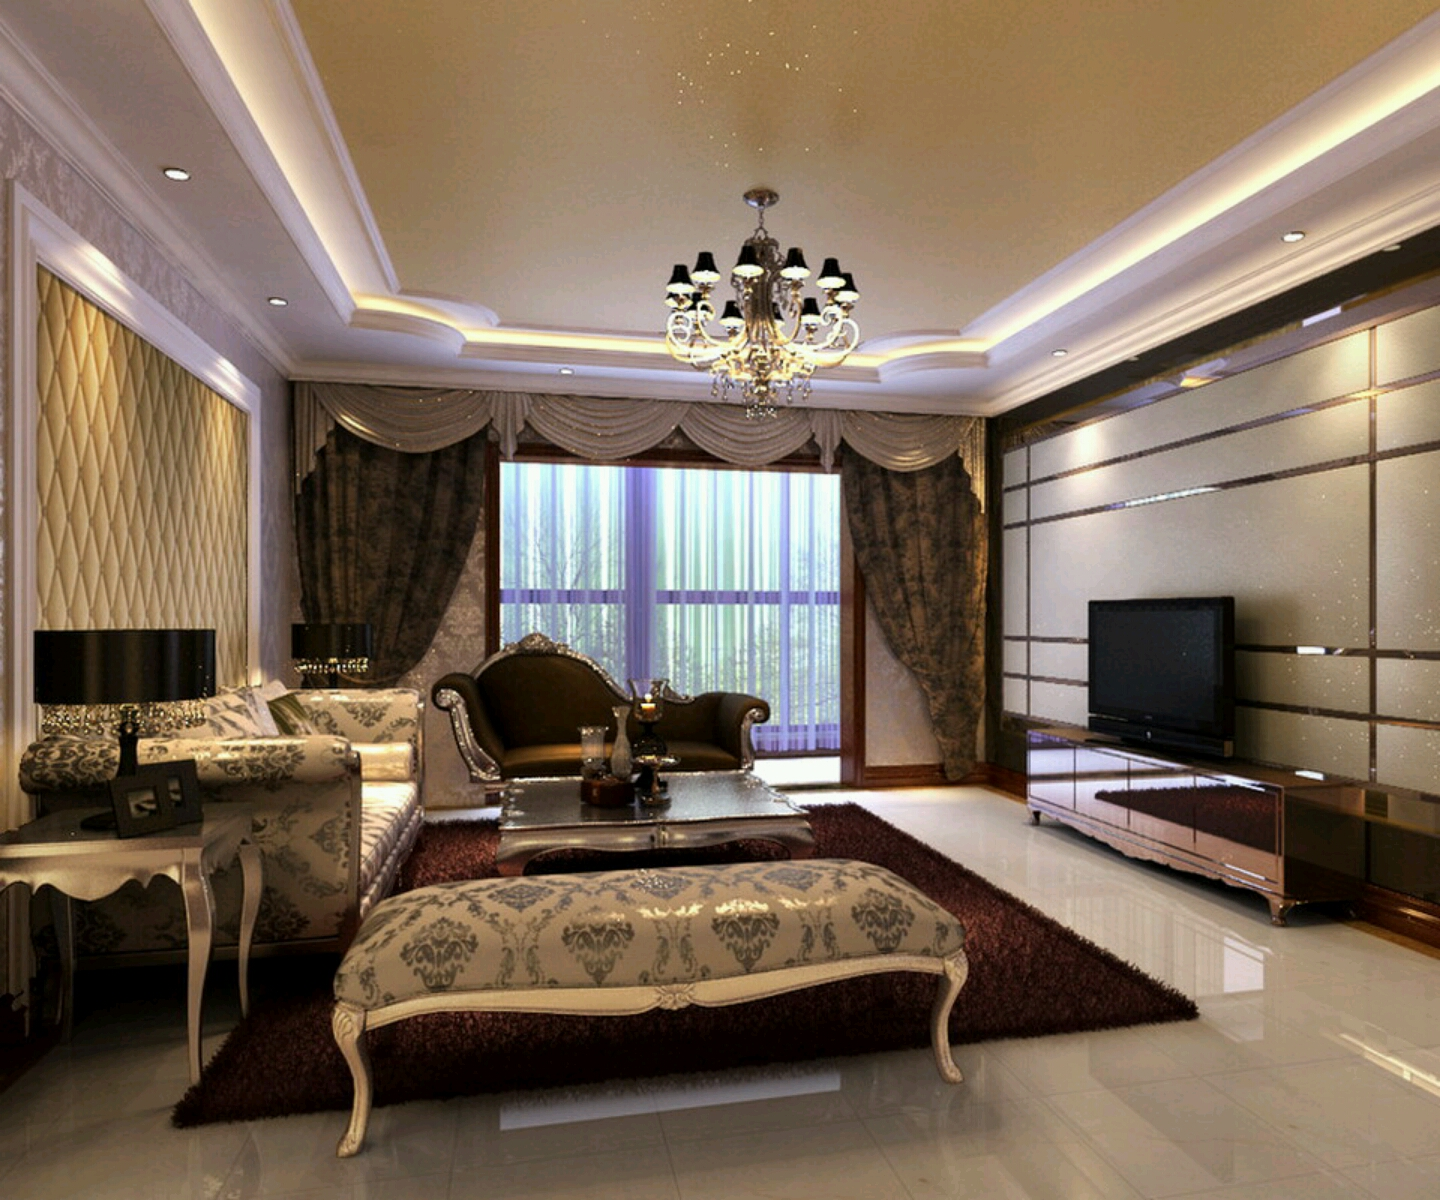 Interior decorating ideas living rooms dream house for Interior decoration of house photos